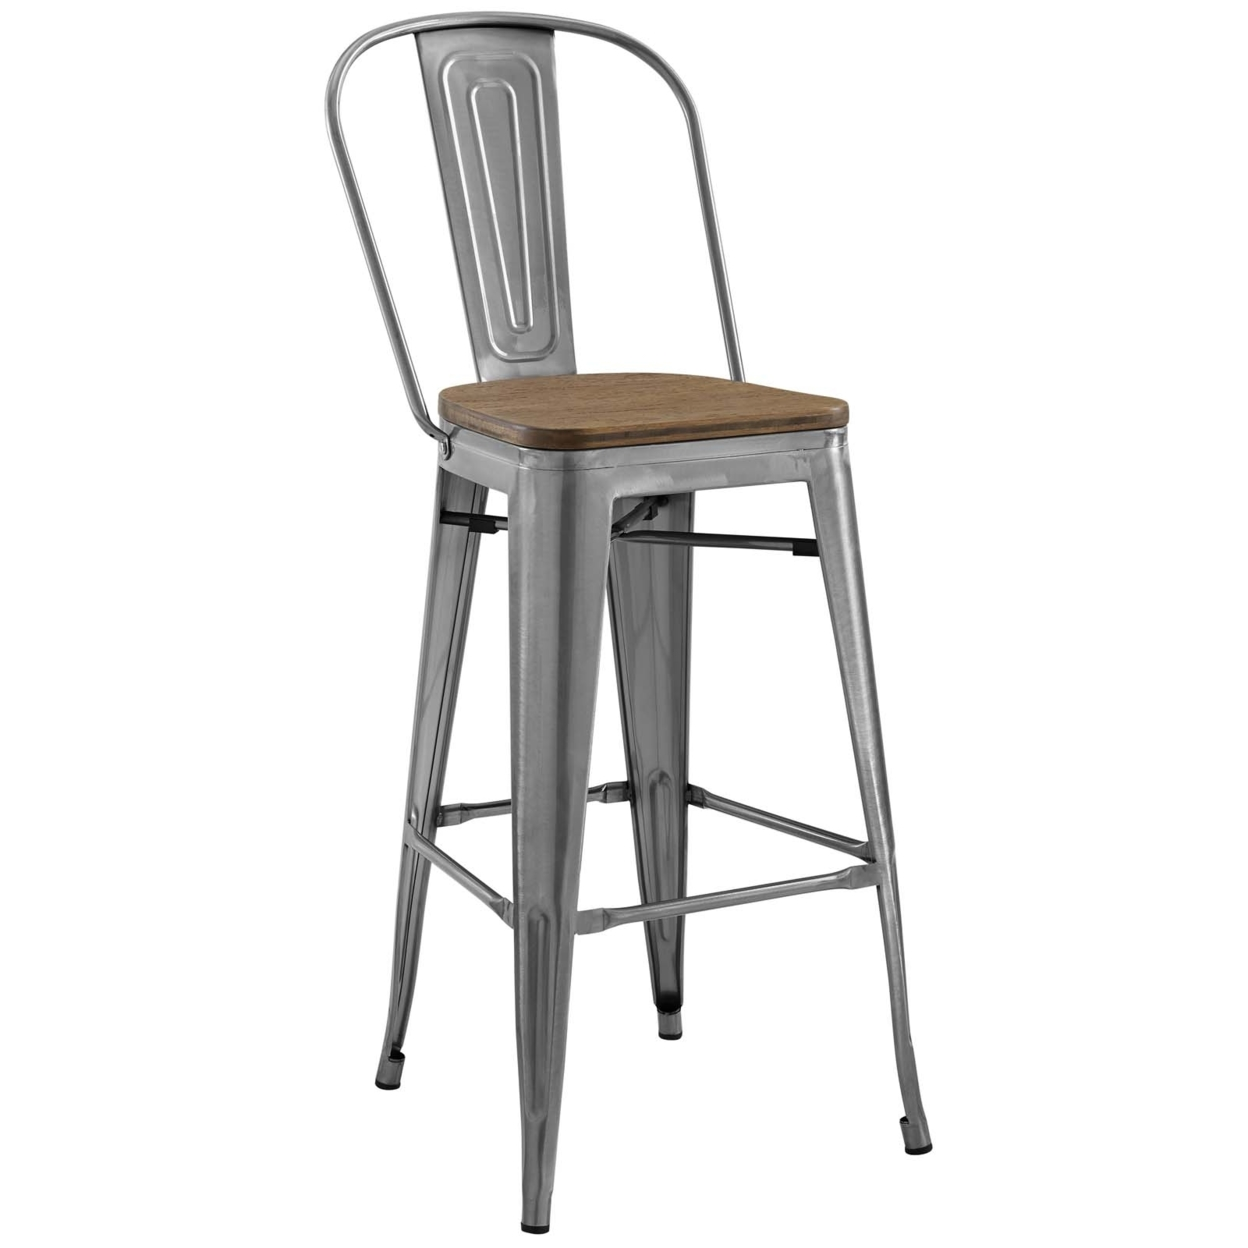 Fashinonable Promenade Bar Stool In Gunmetal Gray ...